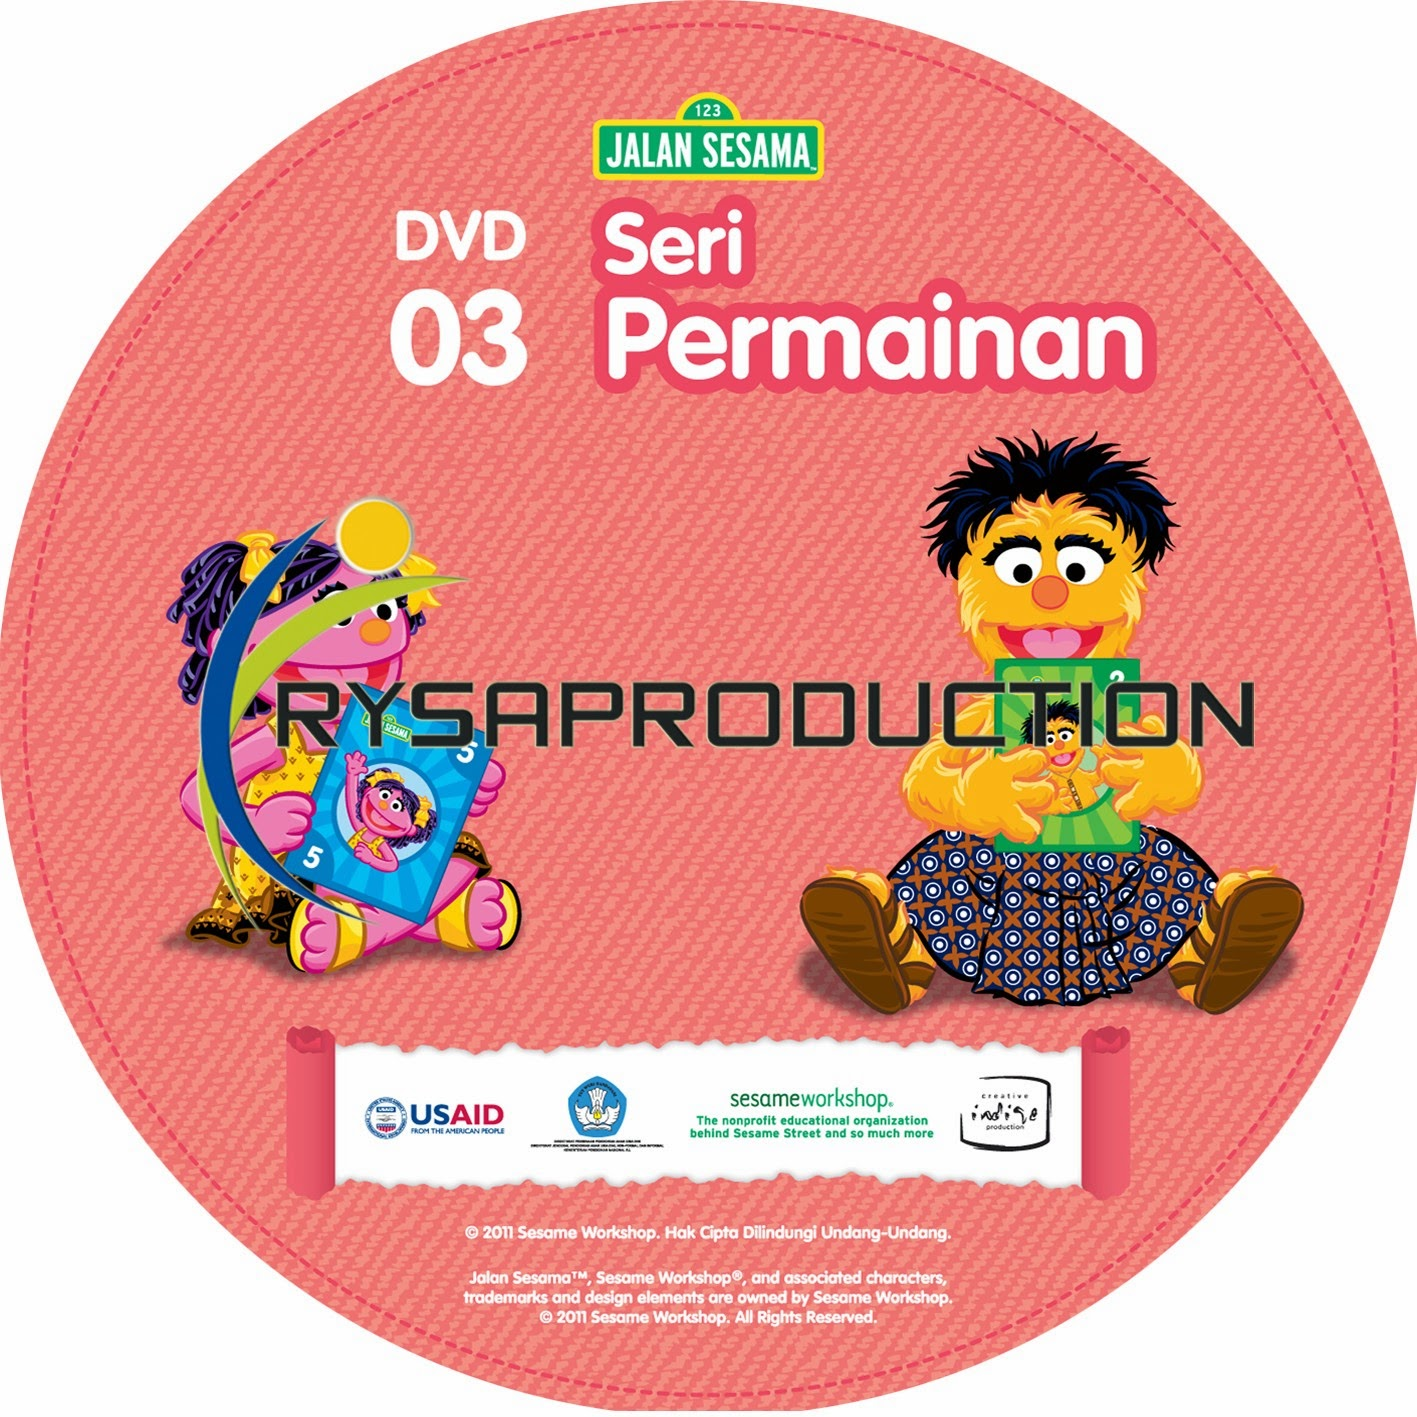 USAID Sesame Workshop